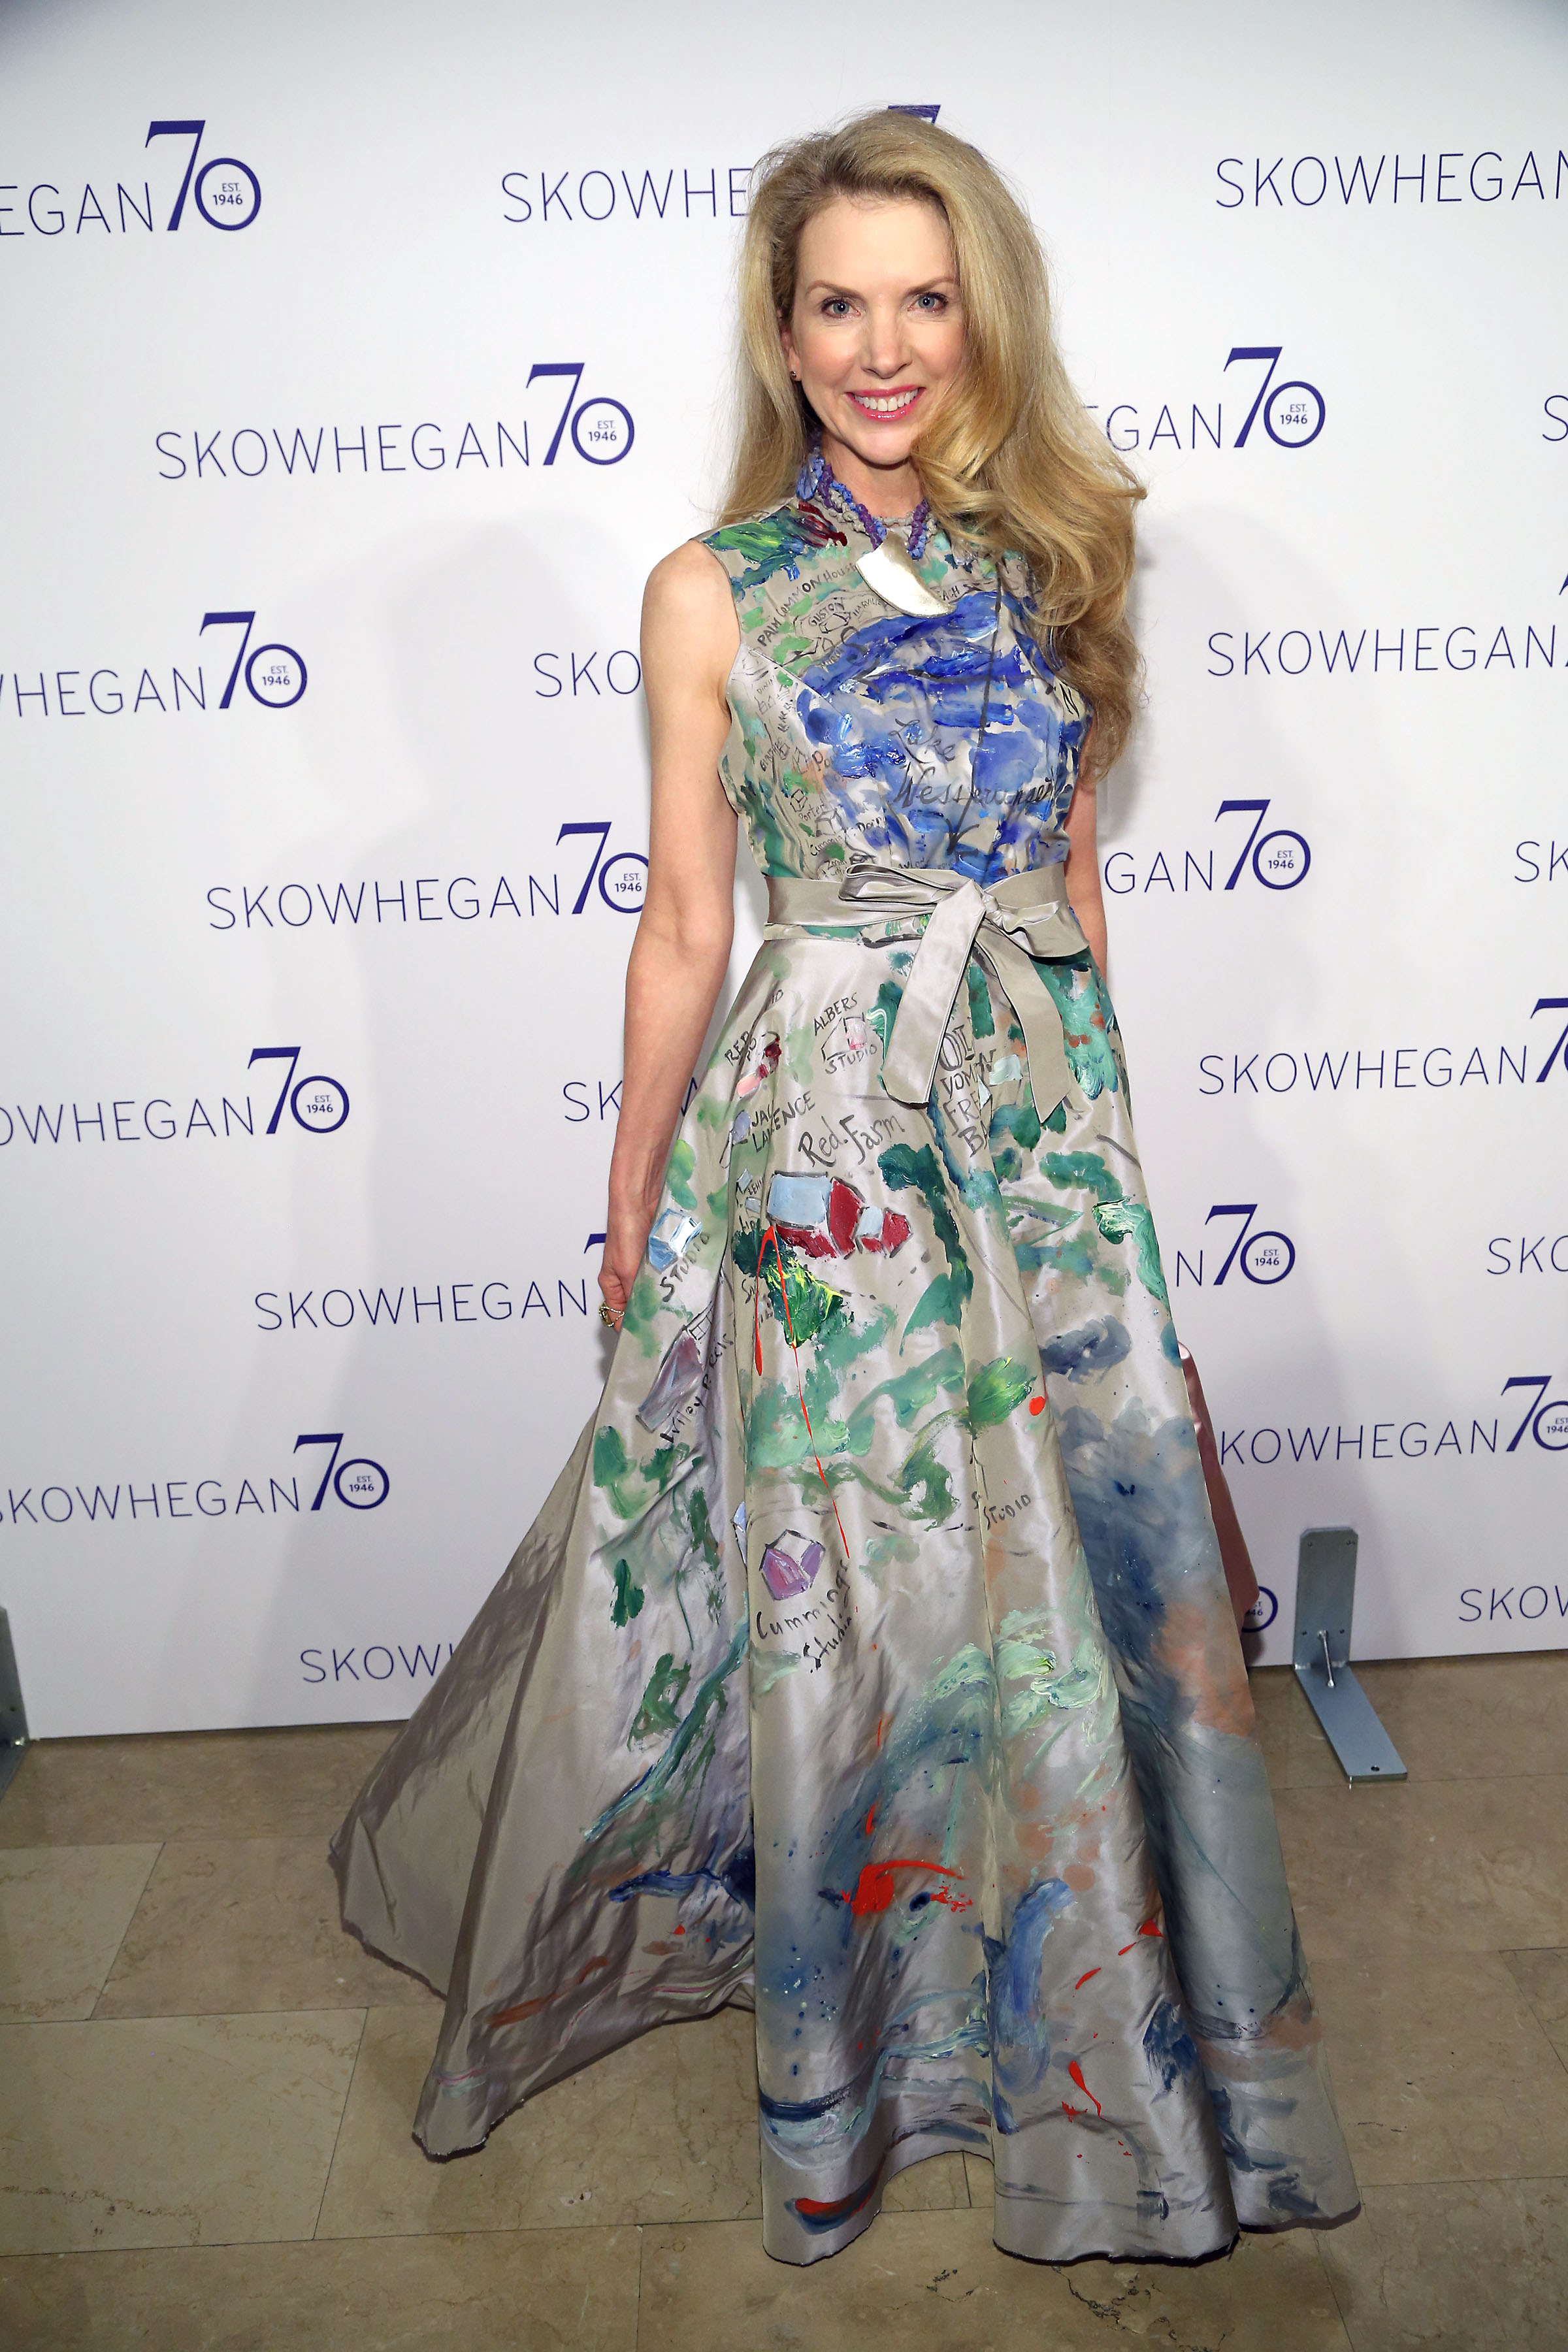 Laura Lobdell==